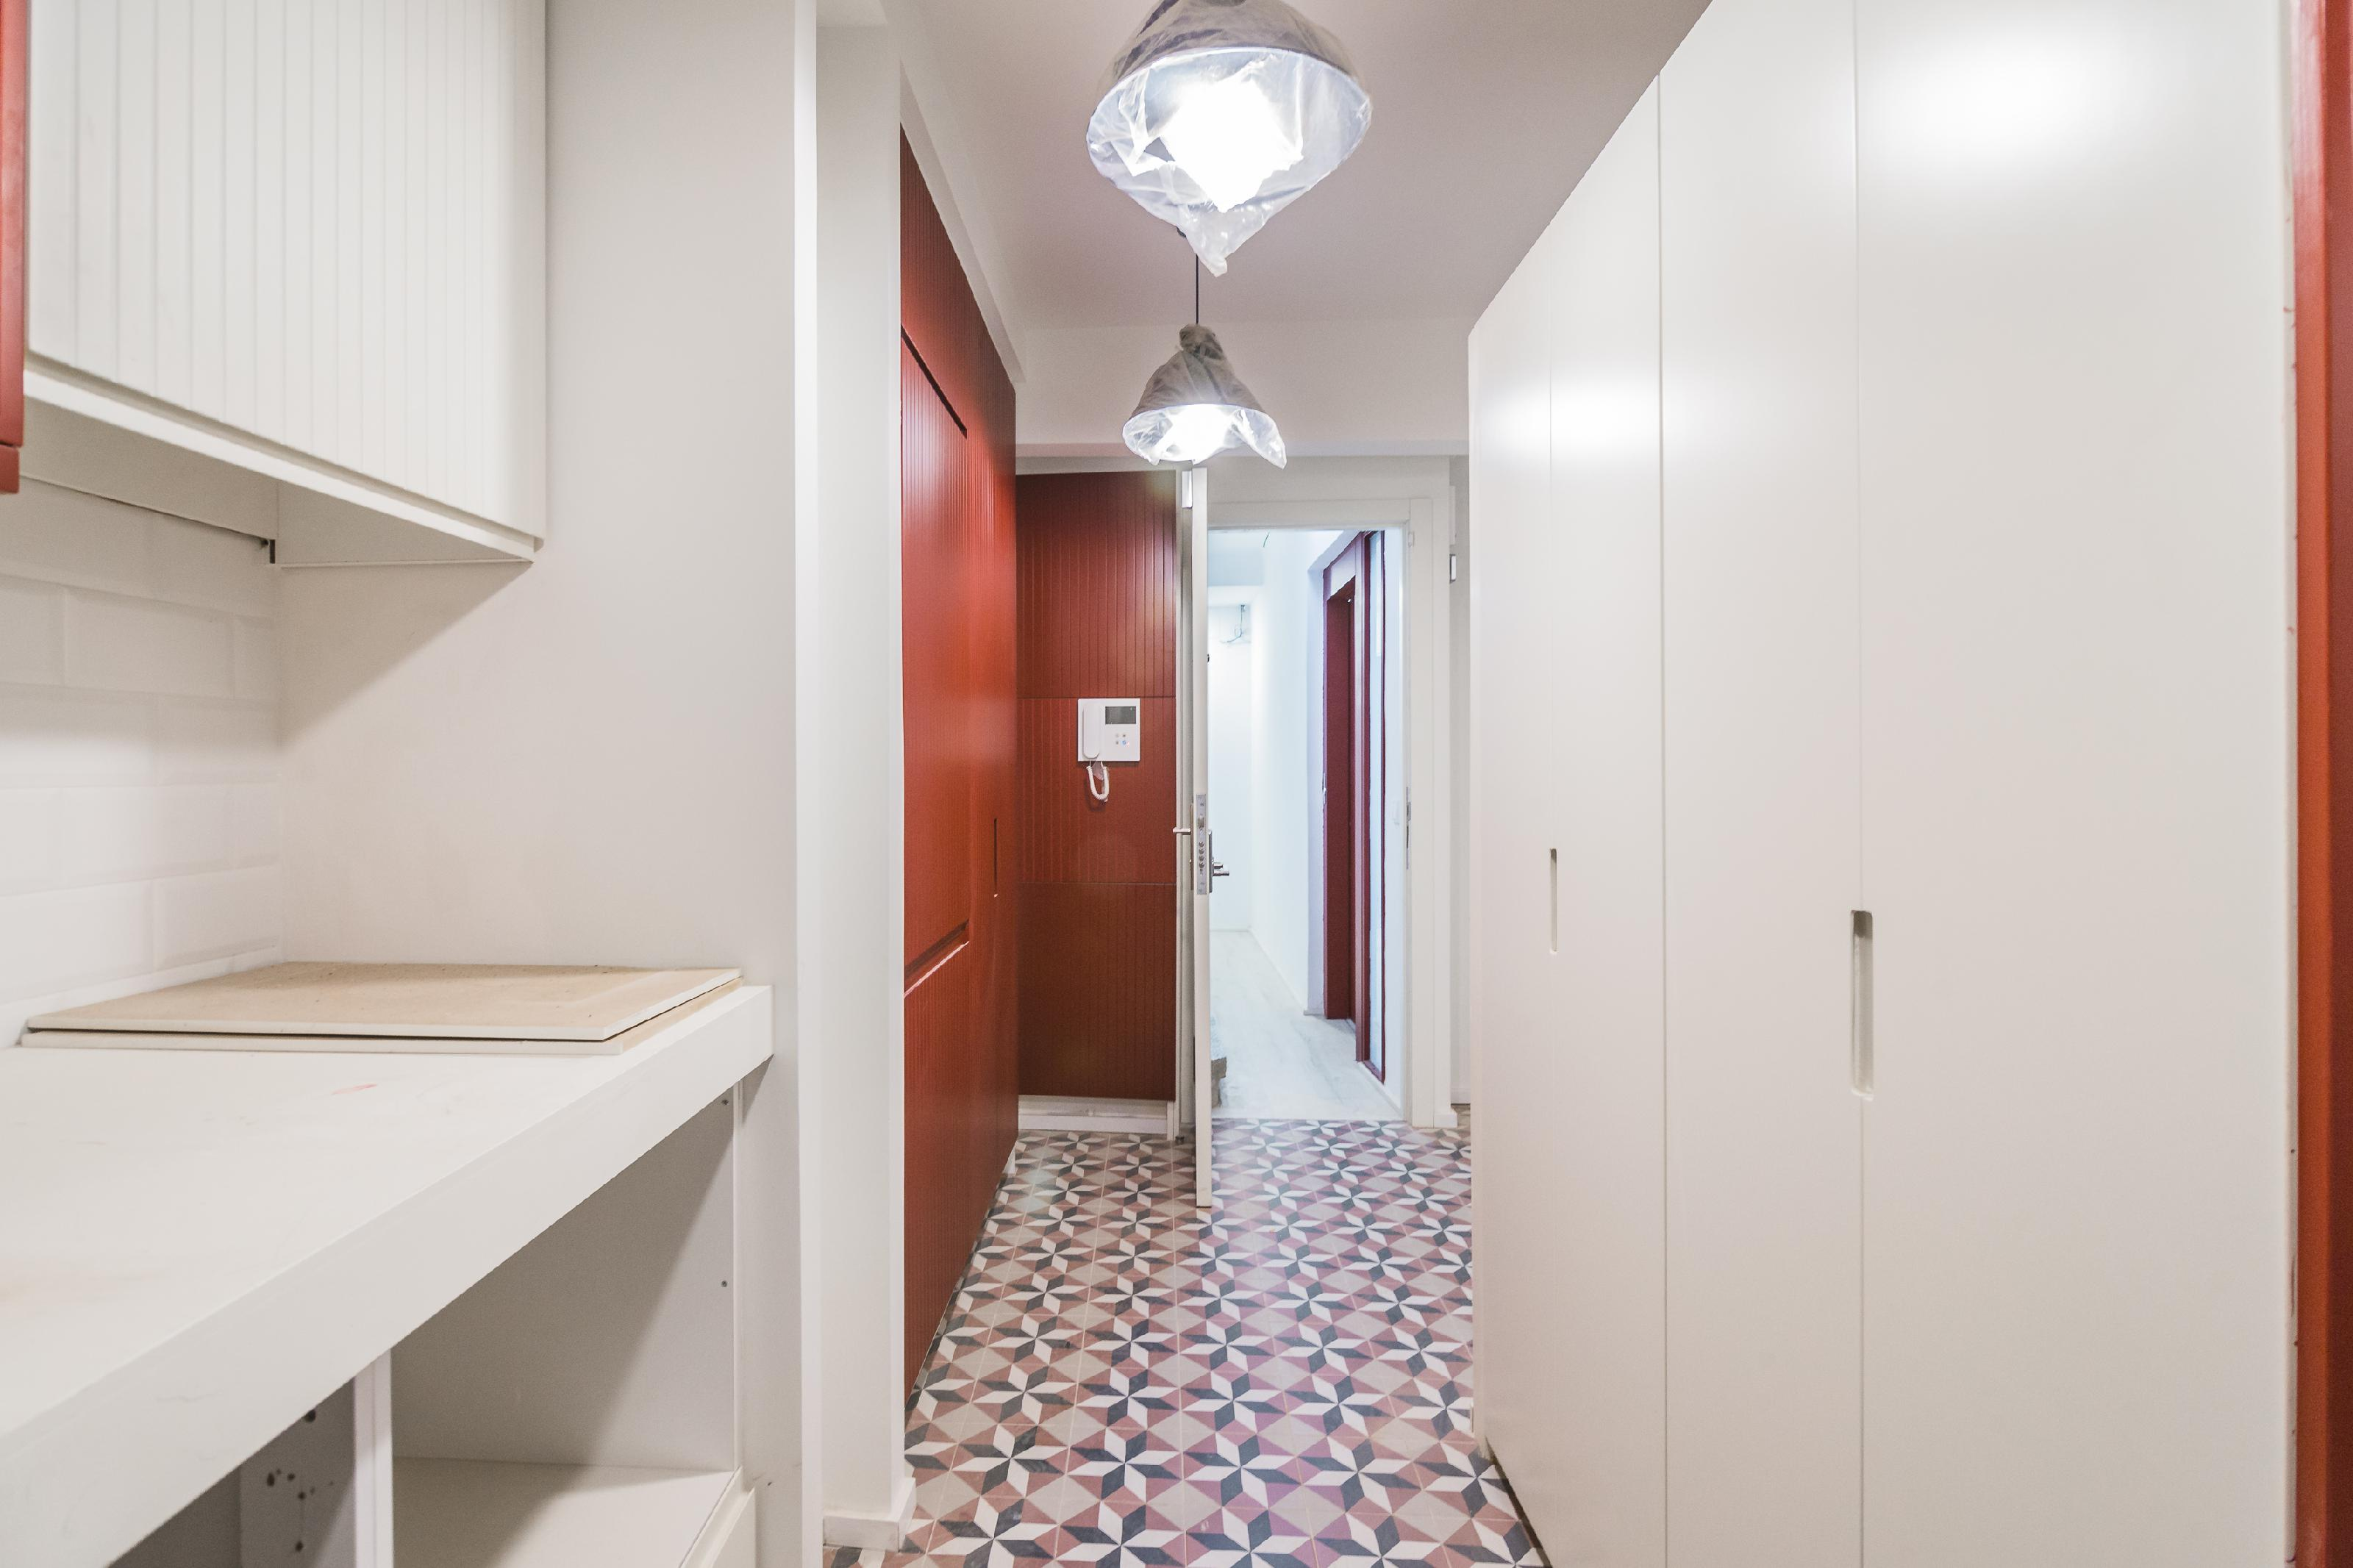 237520 Flat for sale in Ciutat Vella, St. Pere St. Caterina and La Ribera 9